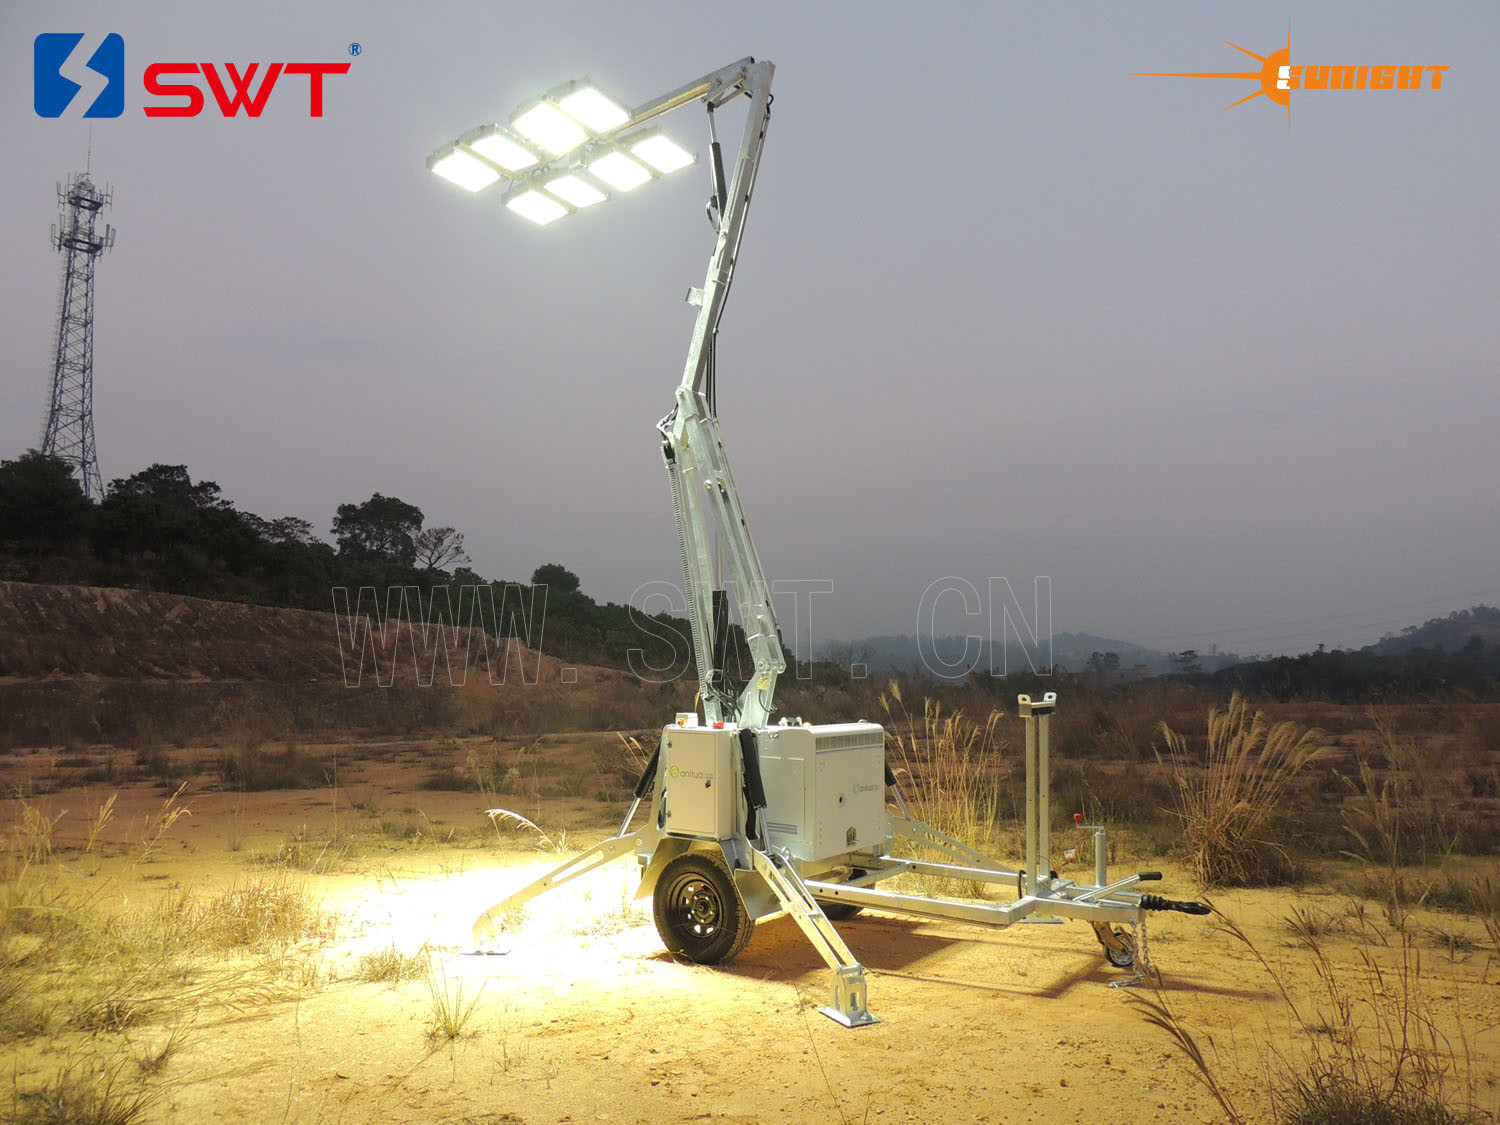 Fully Hydraulic Compact Sunight Lighting Tower with Extra Low Votage 2400W LED Lights Kholer